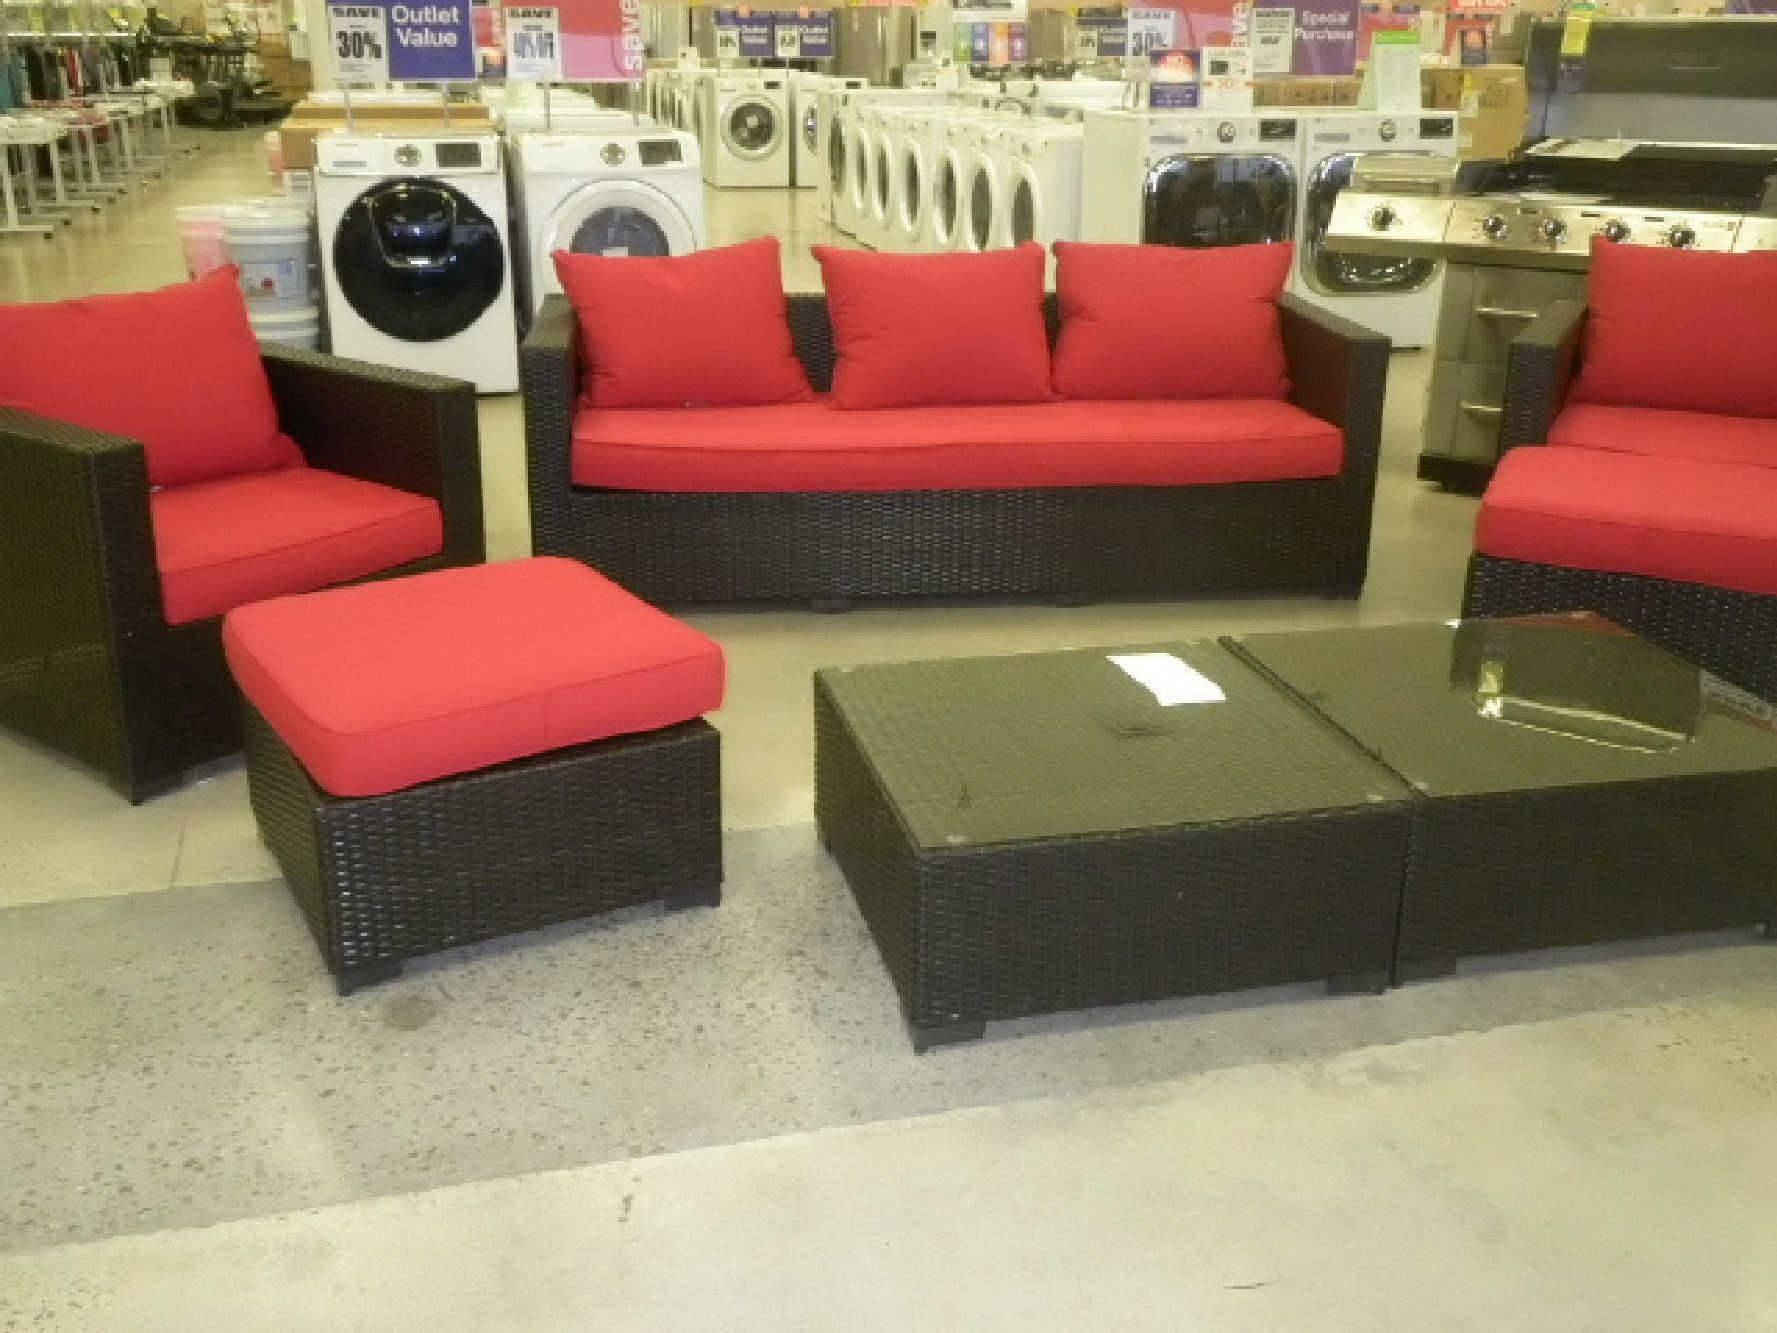 75 Awesome Sears Outlet Sofas Home Design | Hoozoo for Florence Grand Sofas (Image 3 of 25)